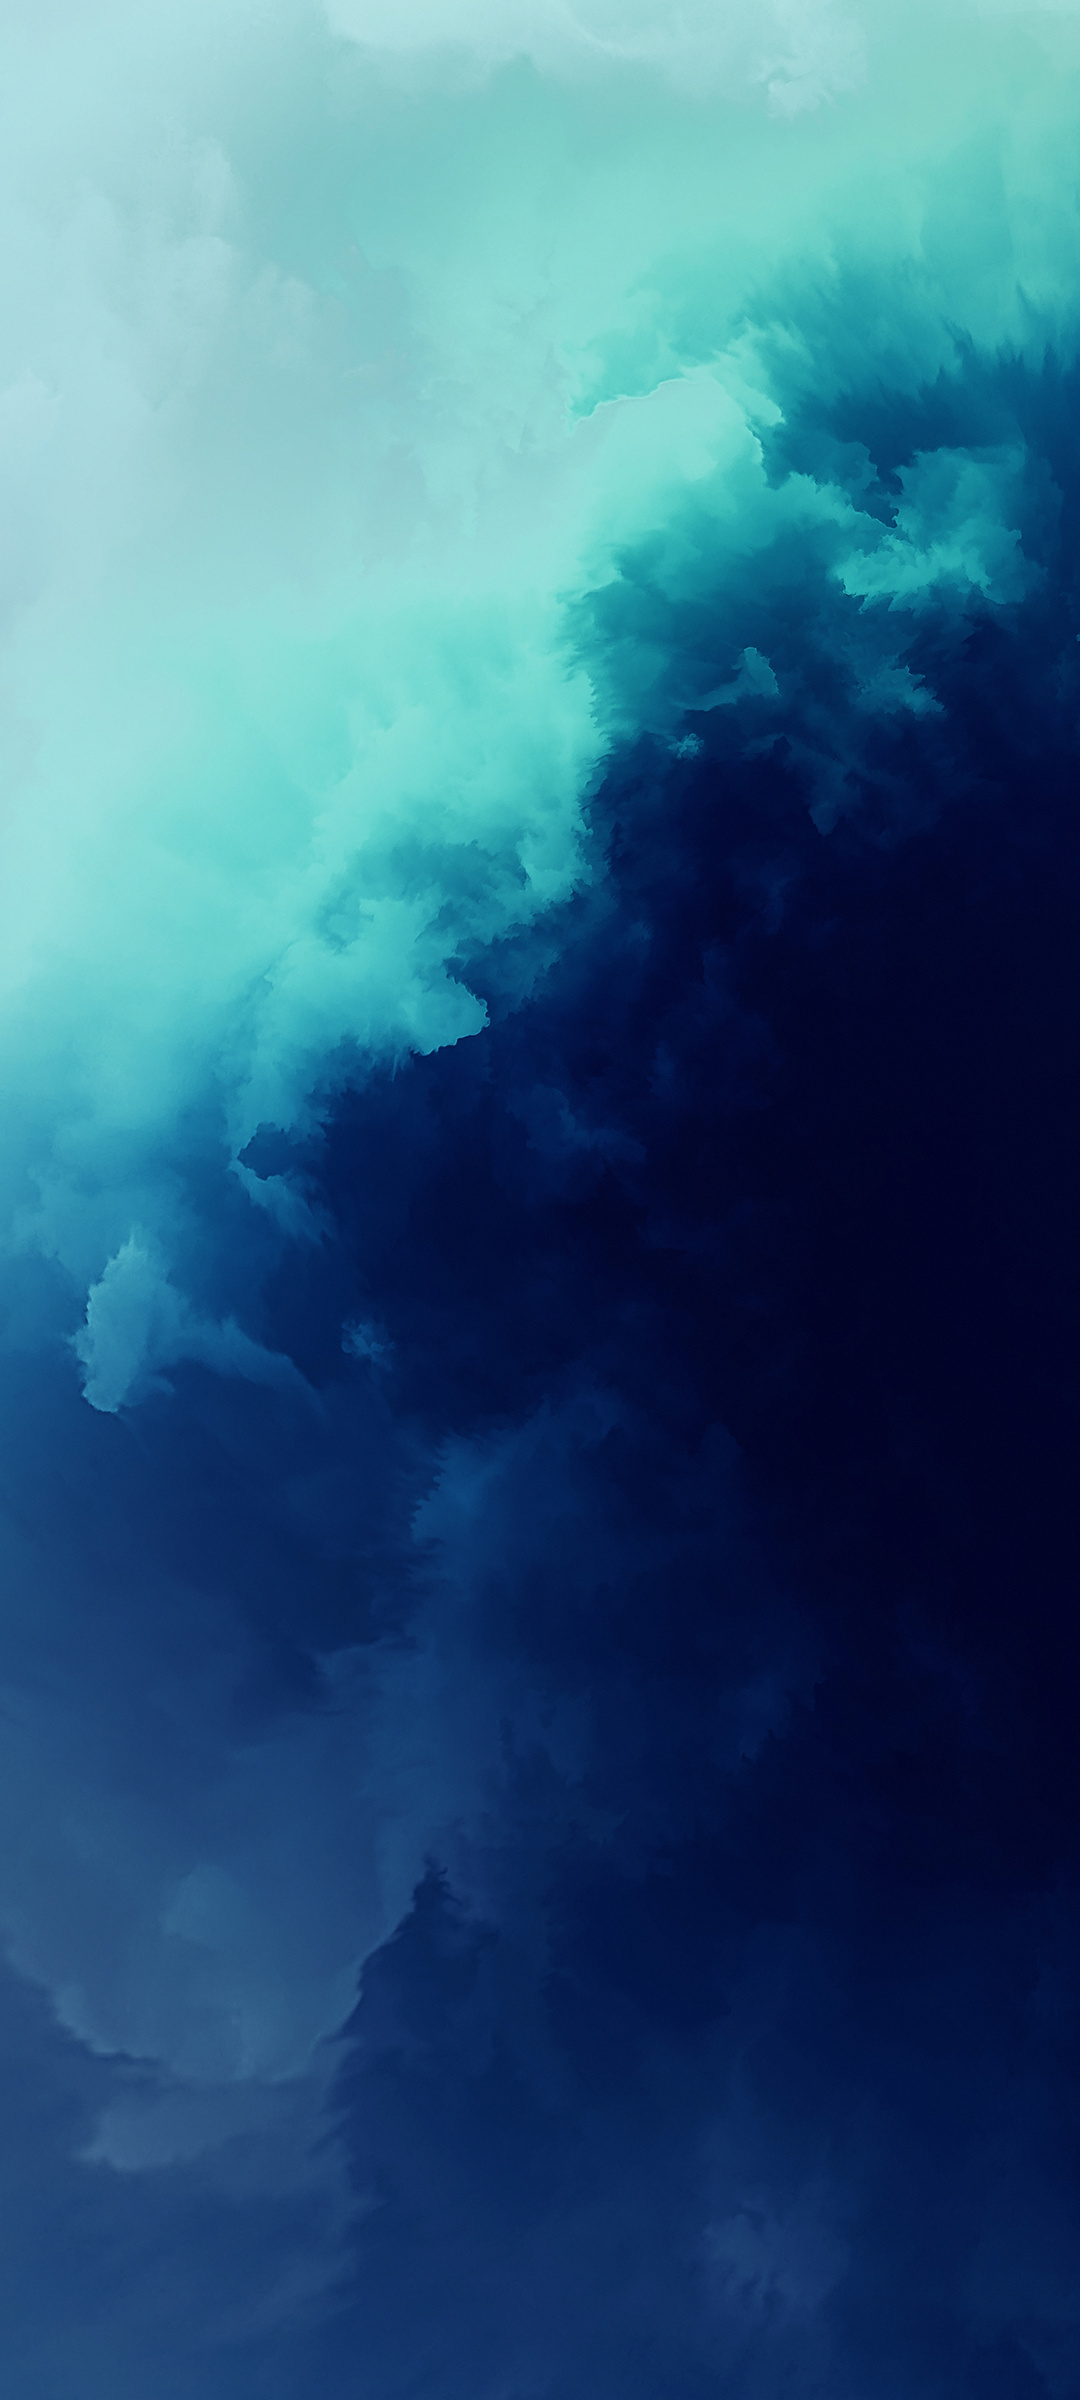 Oneplus 7t mobile wallpaper